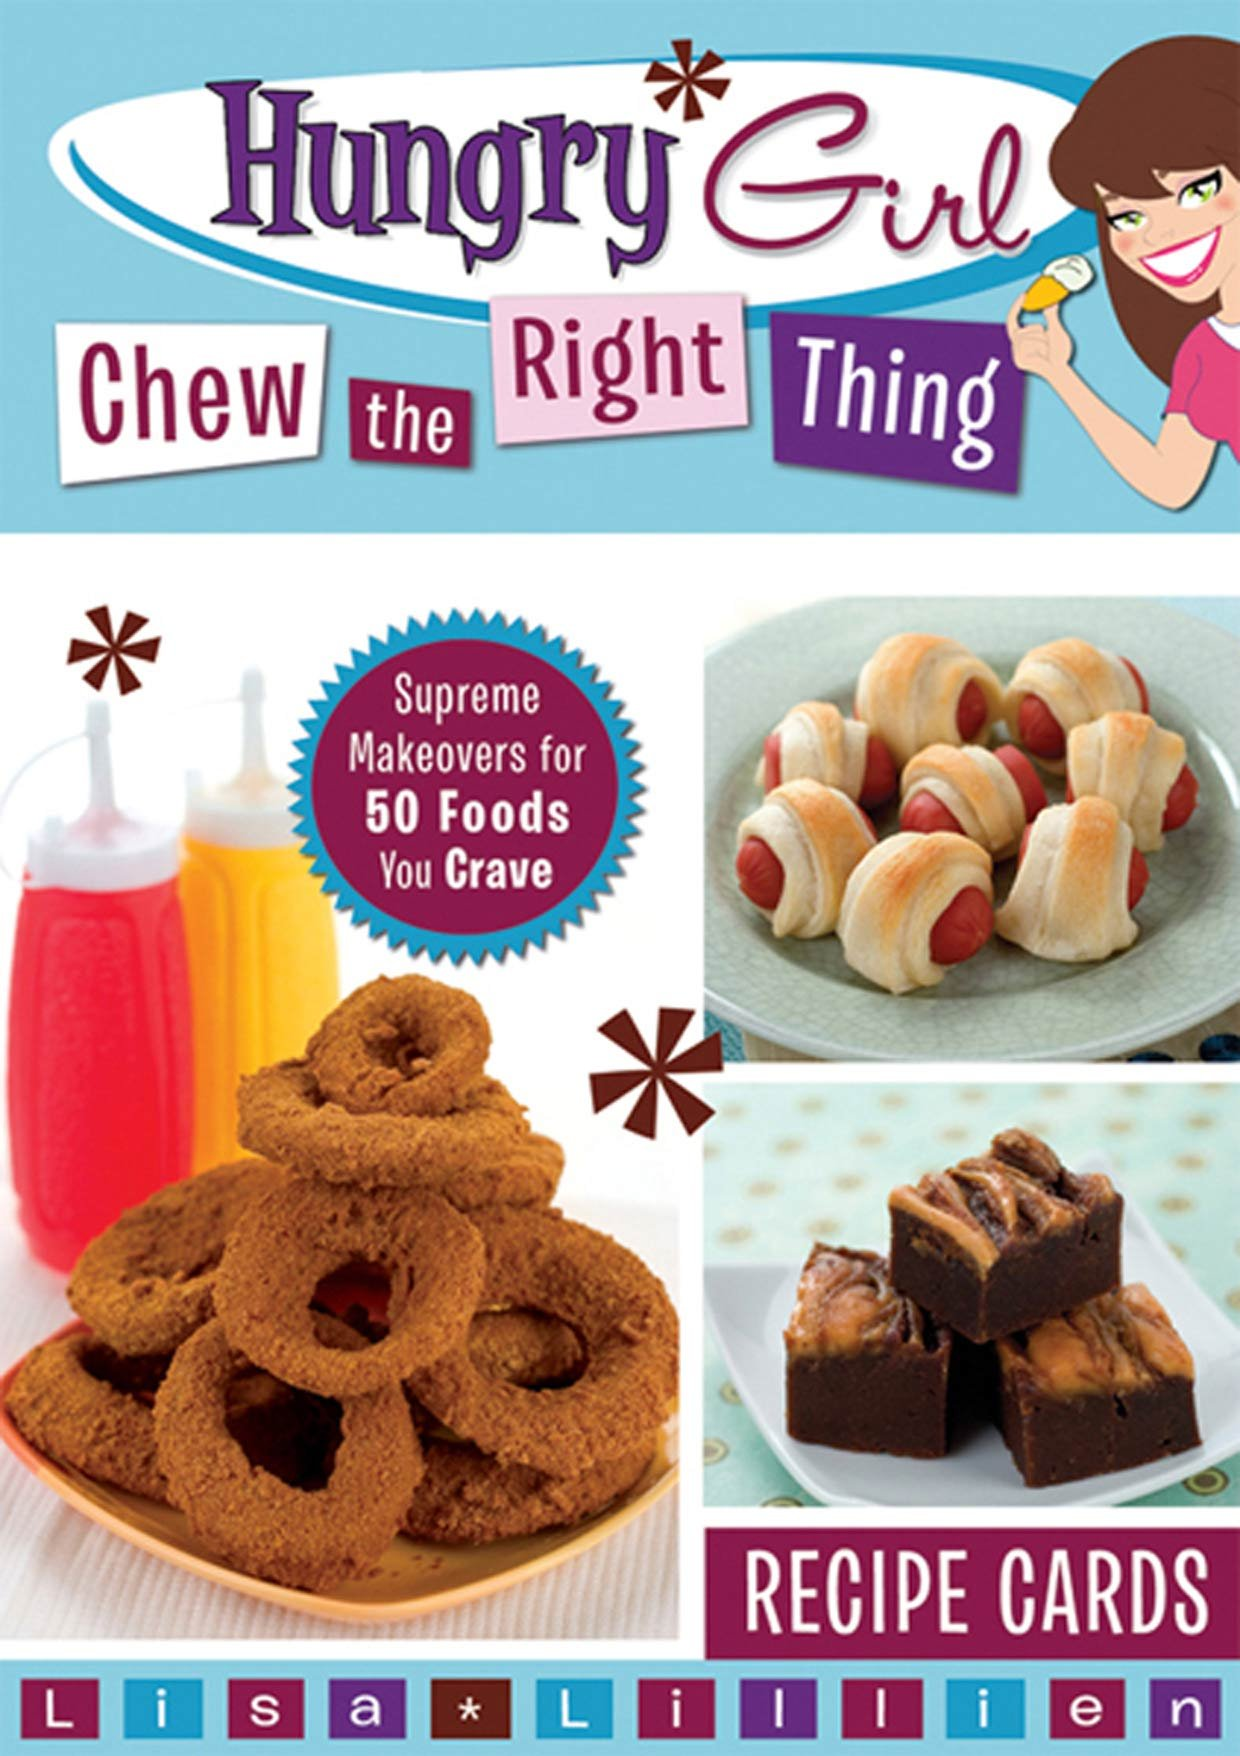 Hungry girl chew the right thing supreme makeovers for 50 foods you hungry girl chew the right thing supreme makeovers for 50 foods you crave lisa lillien 9780312610364 amazon books forumfinder Choice Image